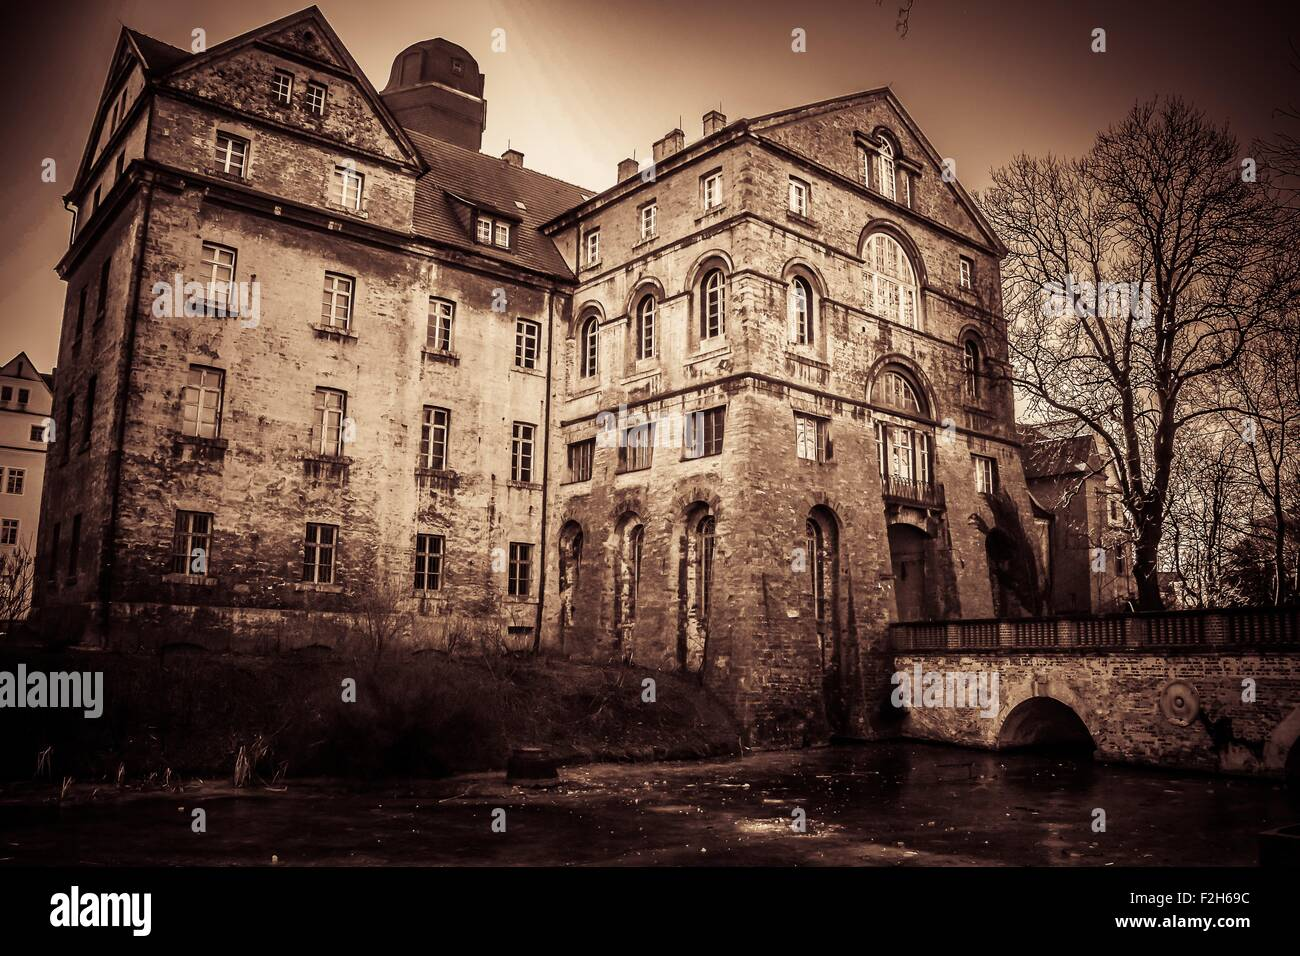 Old building - Stock Image